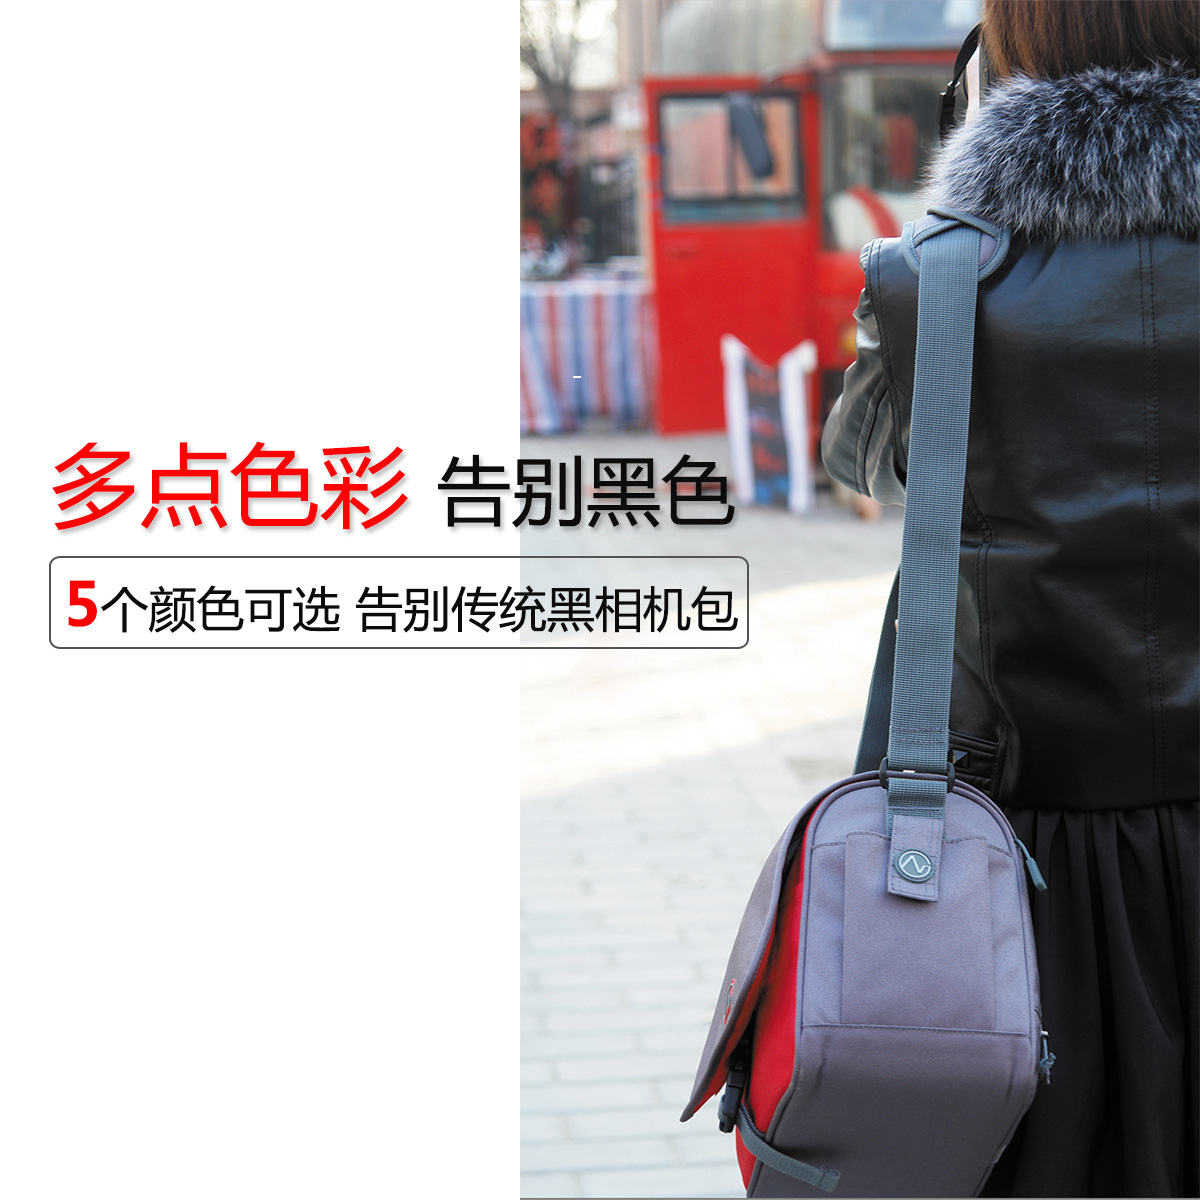 Nuanxingjiafang New Micro Single Camera Bag SLR Shoulder Mobile Camera Bag Nylon Material Digital Accessories Storage Bag Outdoor Leisure Bag Size 9 12.515.5cm Gray Package Well-Made